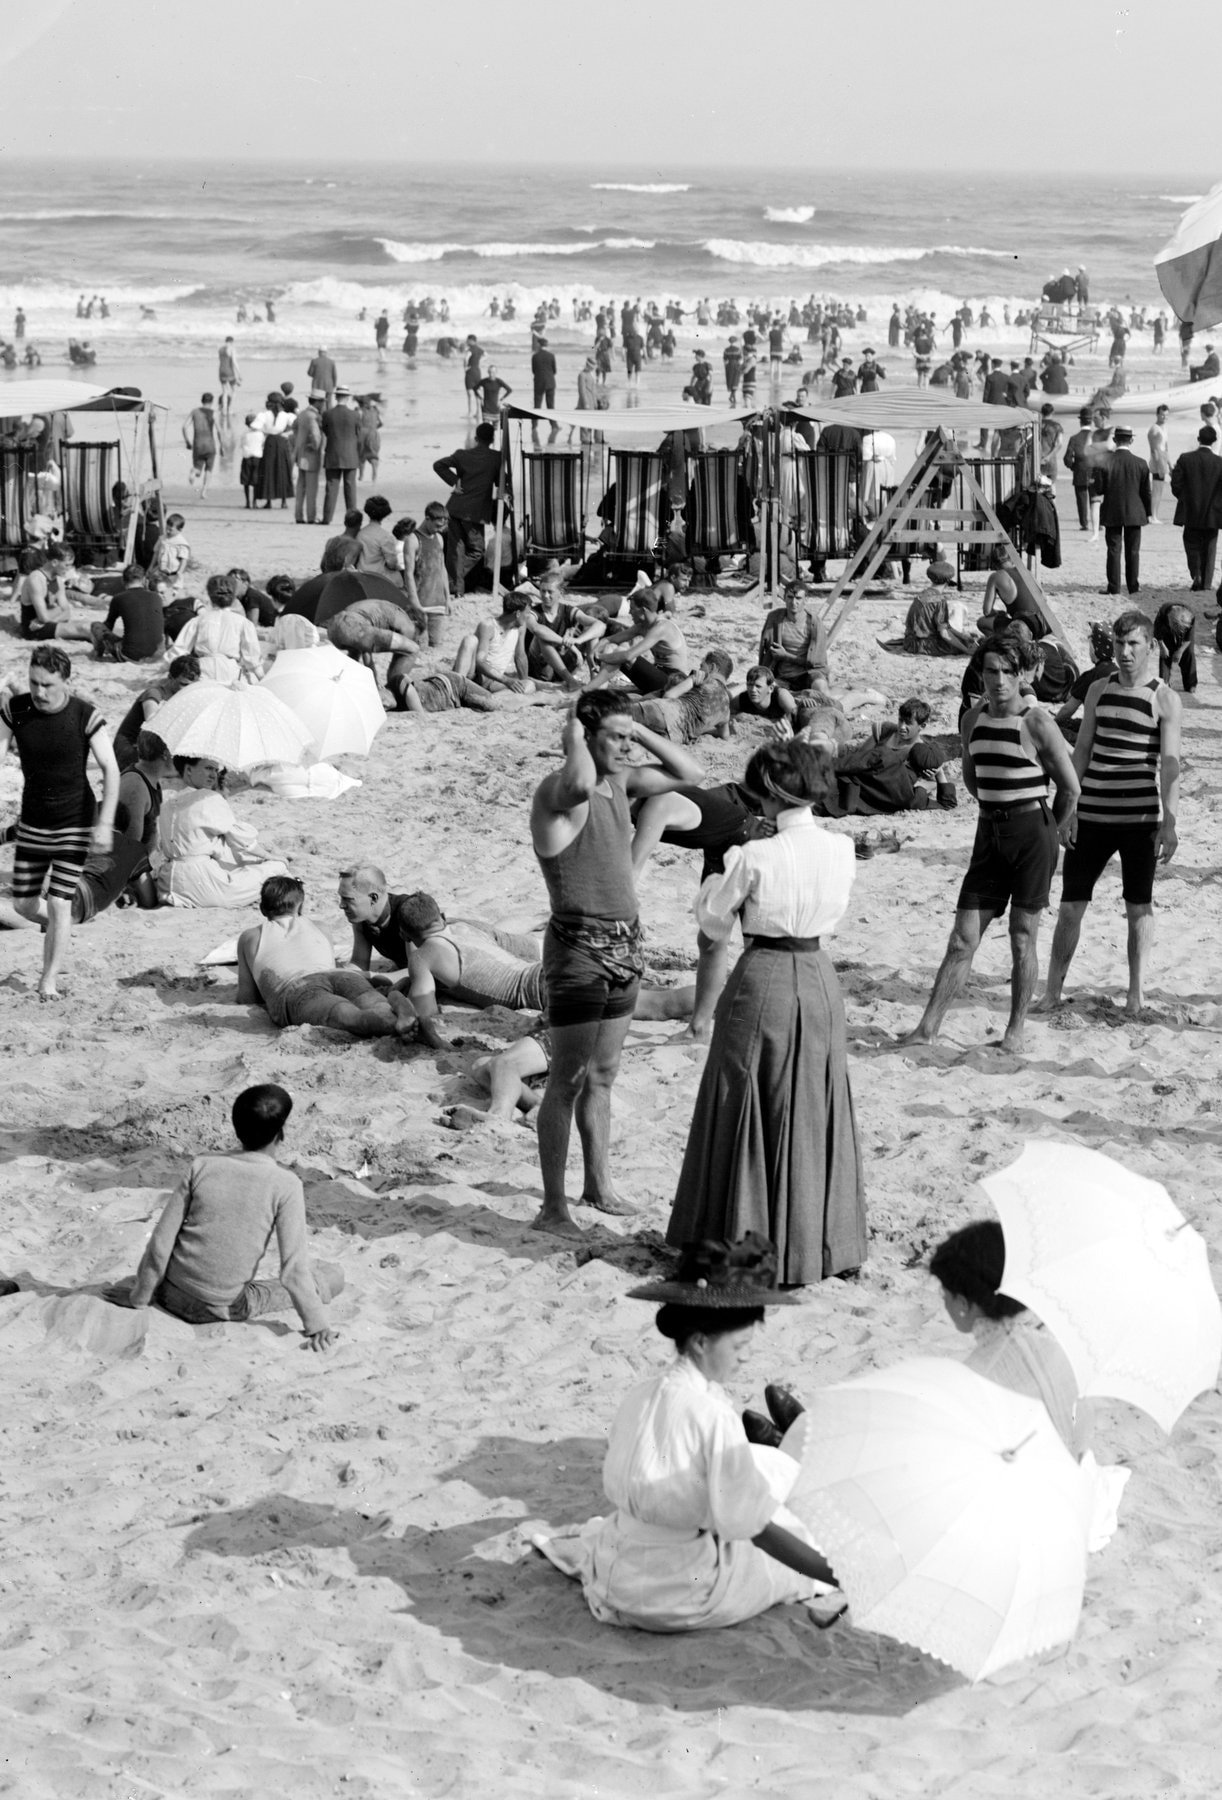 Vintage Jersey Shore beach scenes from the early 1900s (1)